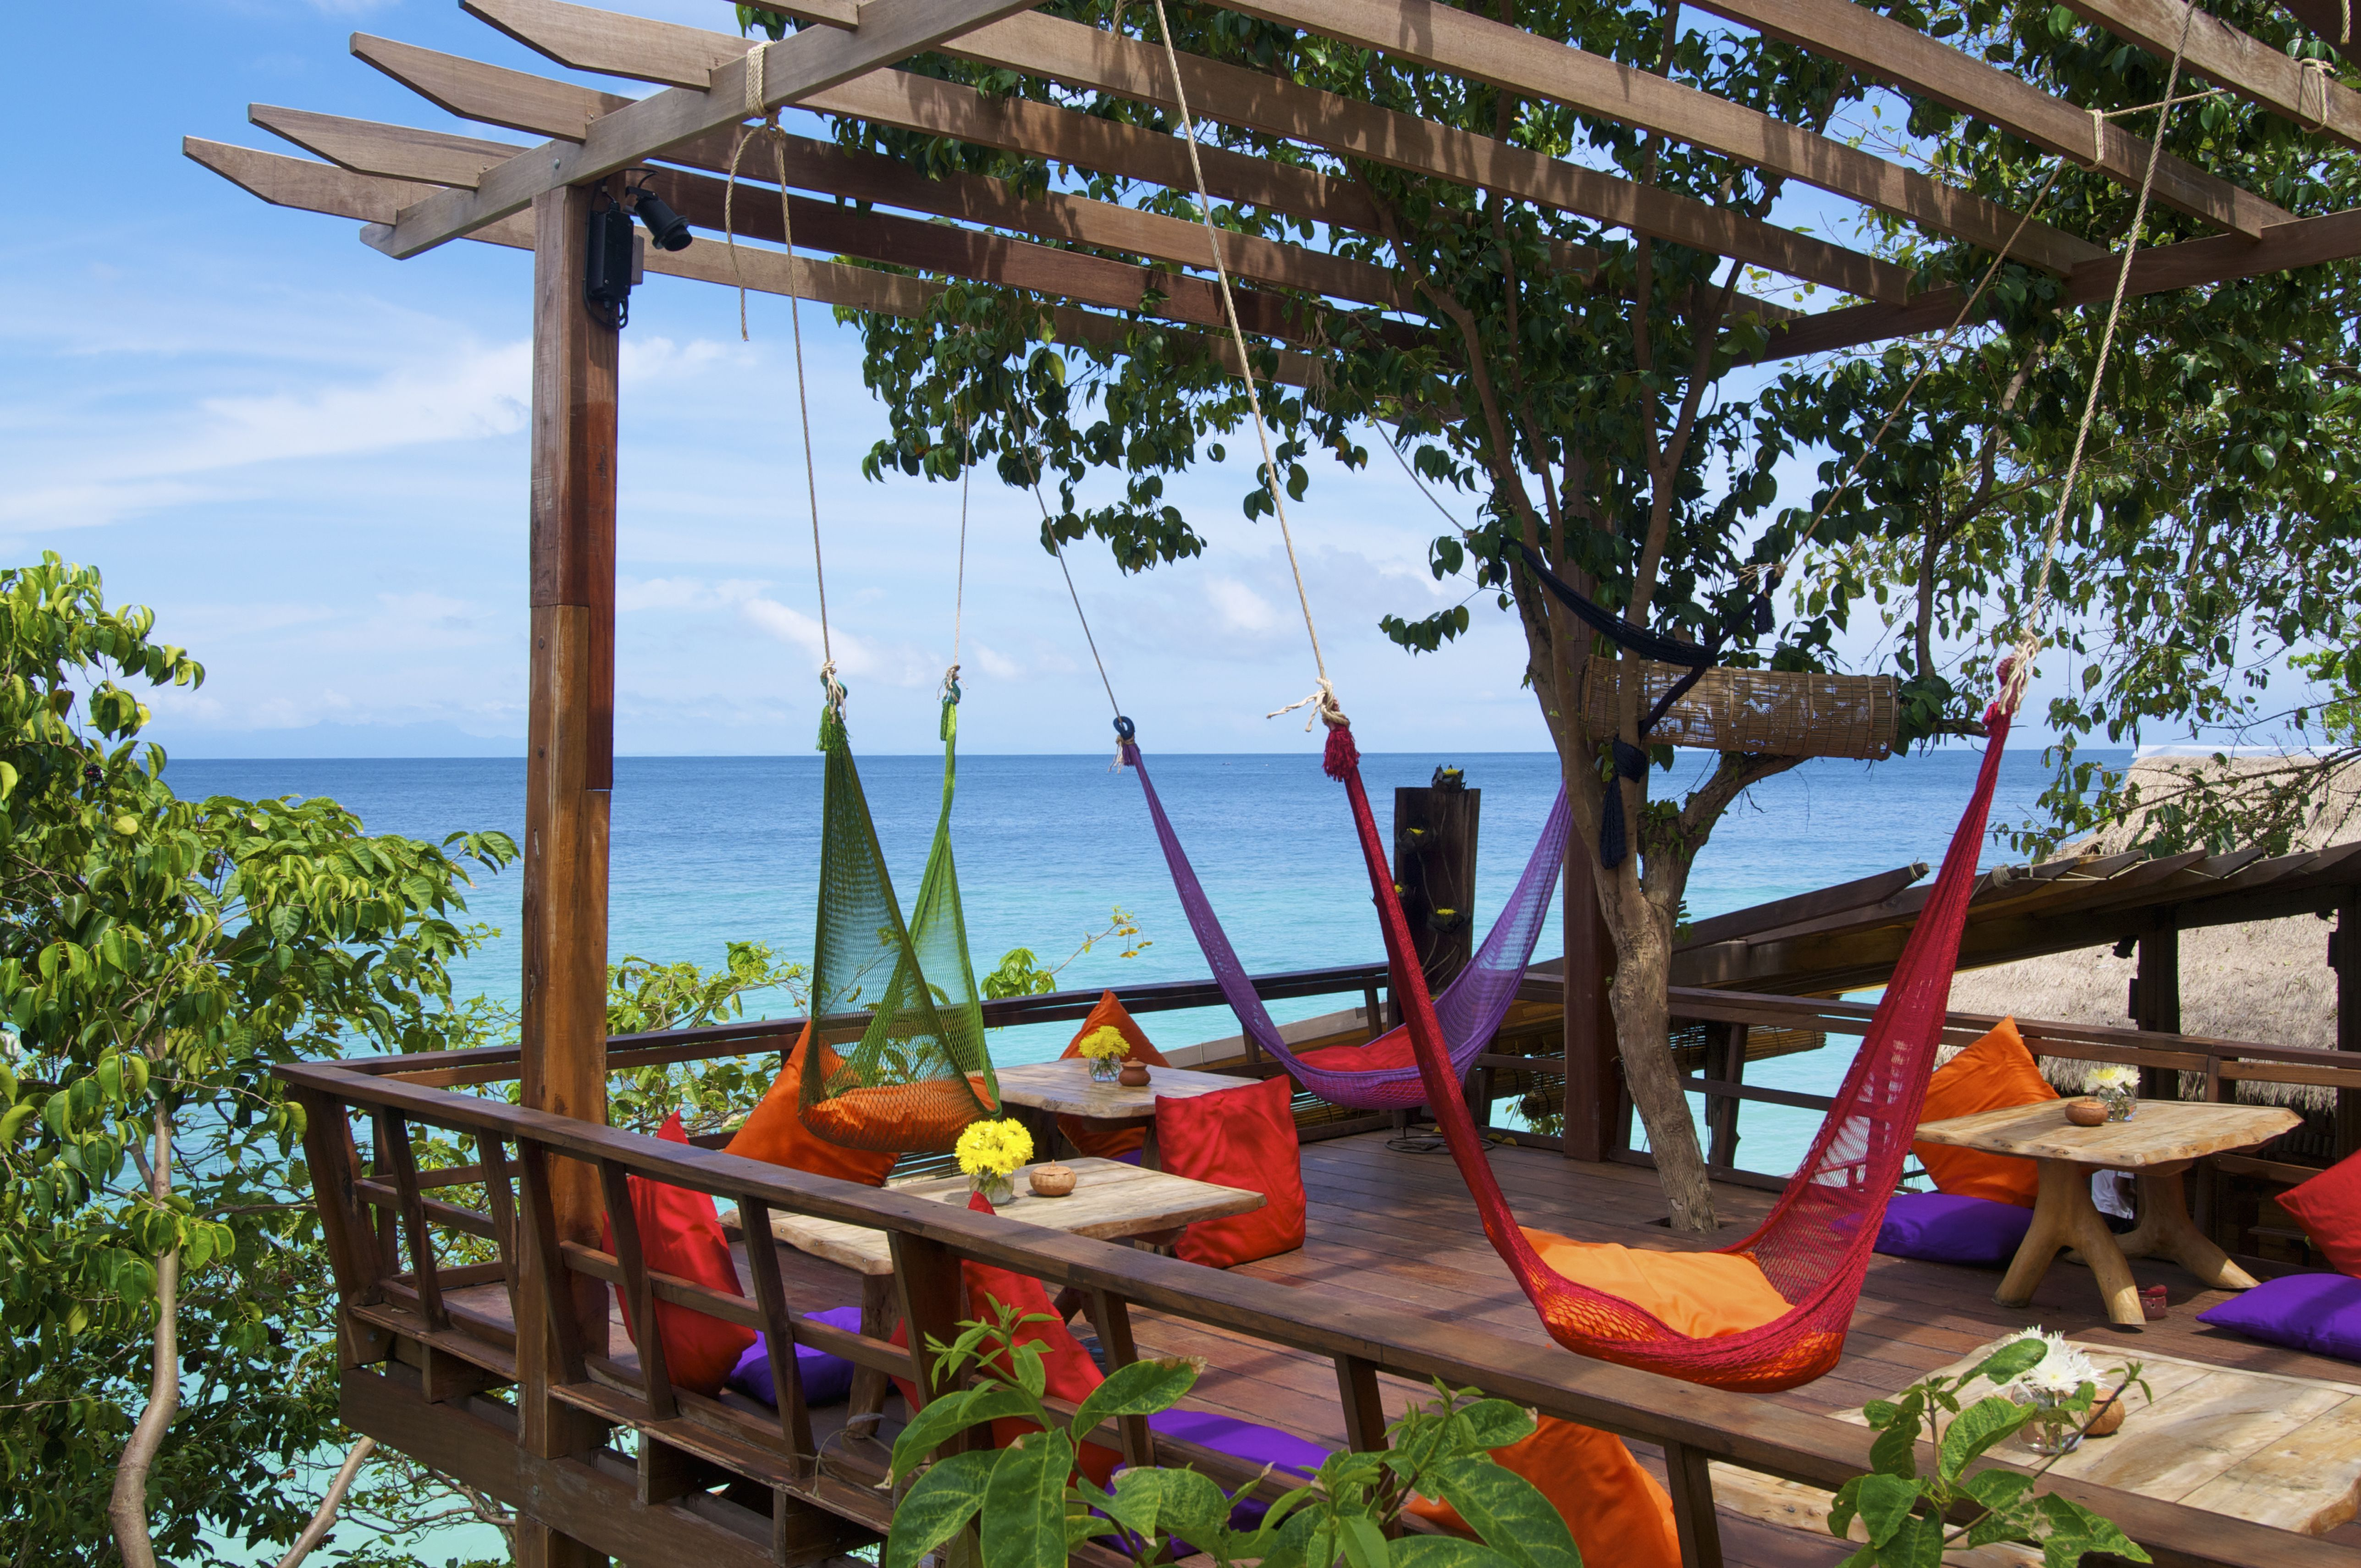 Colorful hammocks hang in a restaurant by the sea